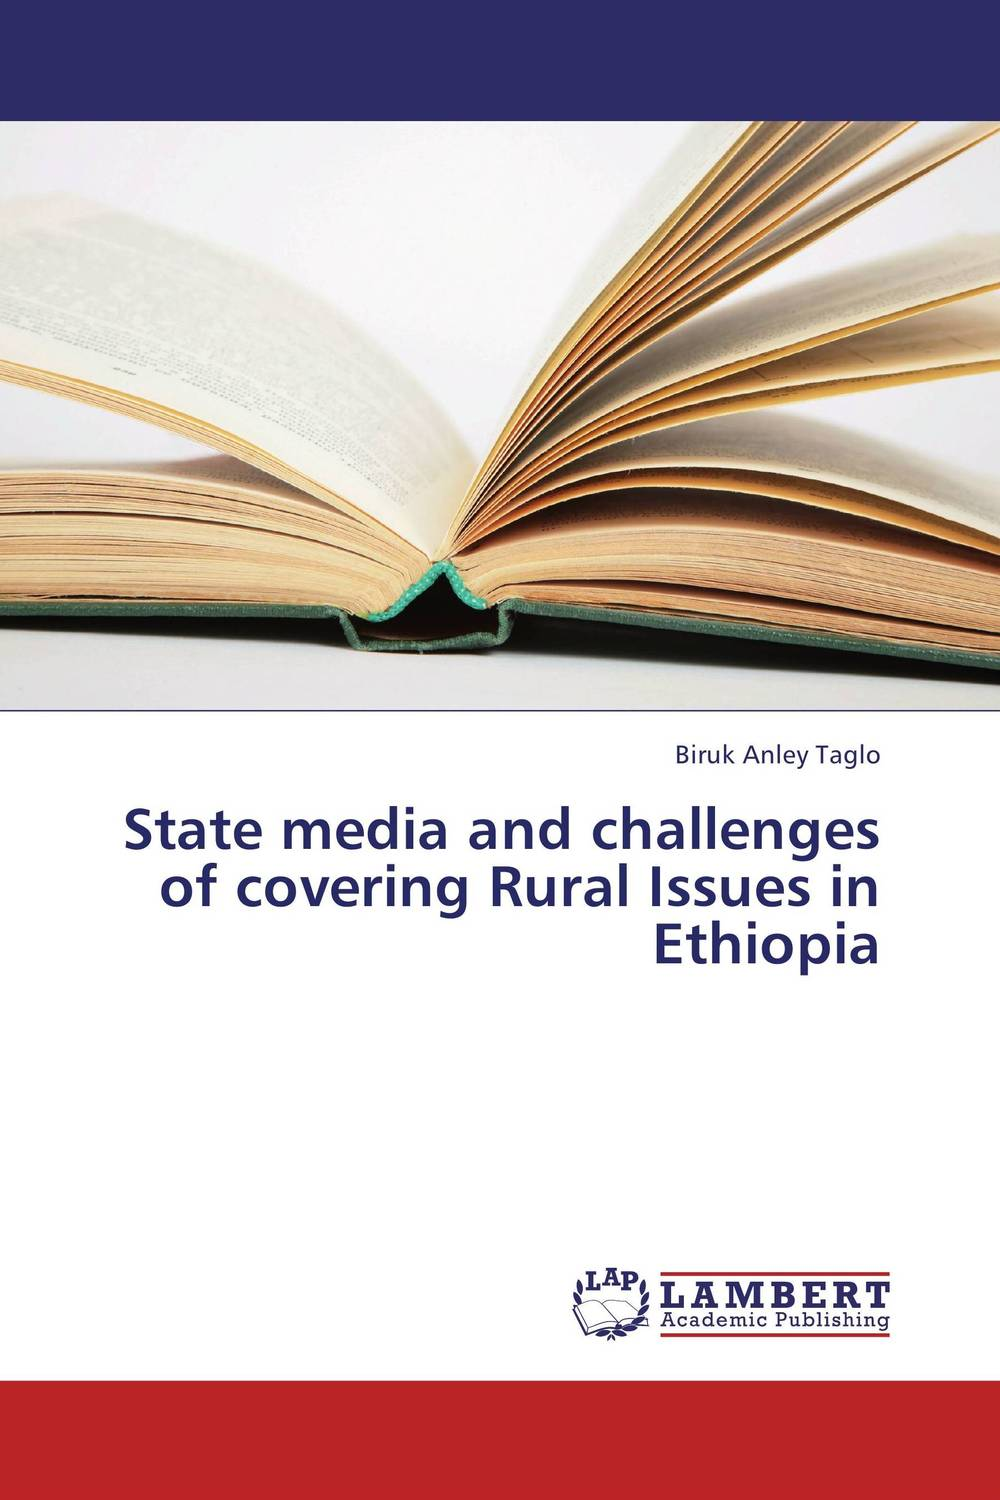 где купить State media and challenges of covering Rural Issues in Ethiopia по лучшей цене